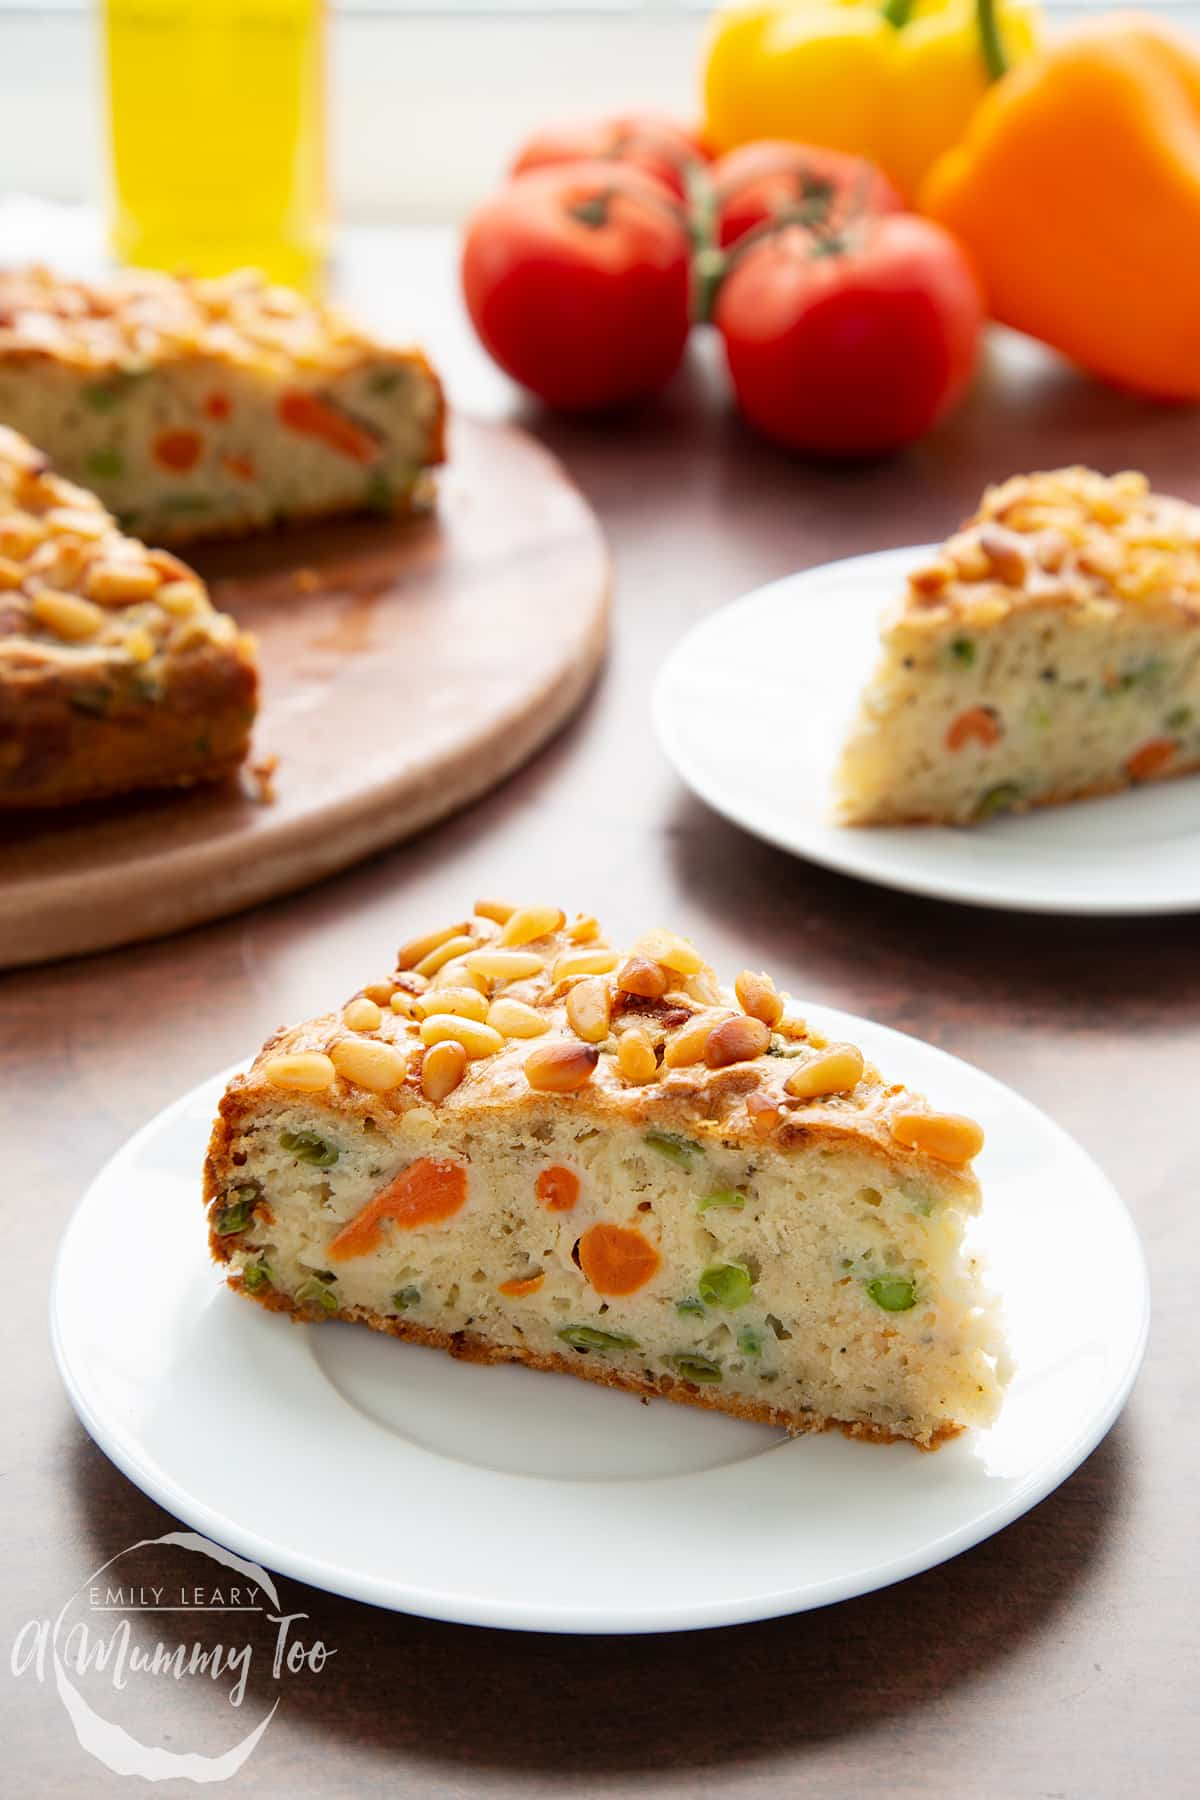 A slice of vegetable cake on a white plate with more cake in the background.